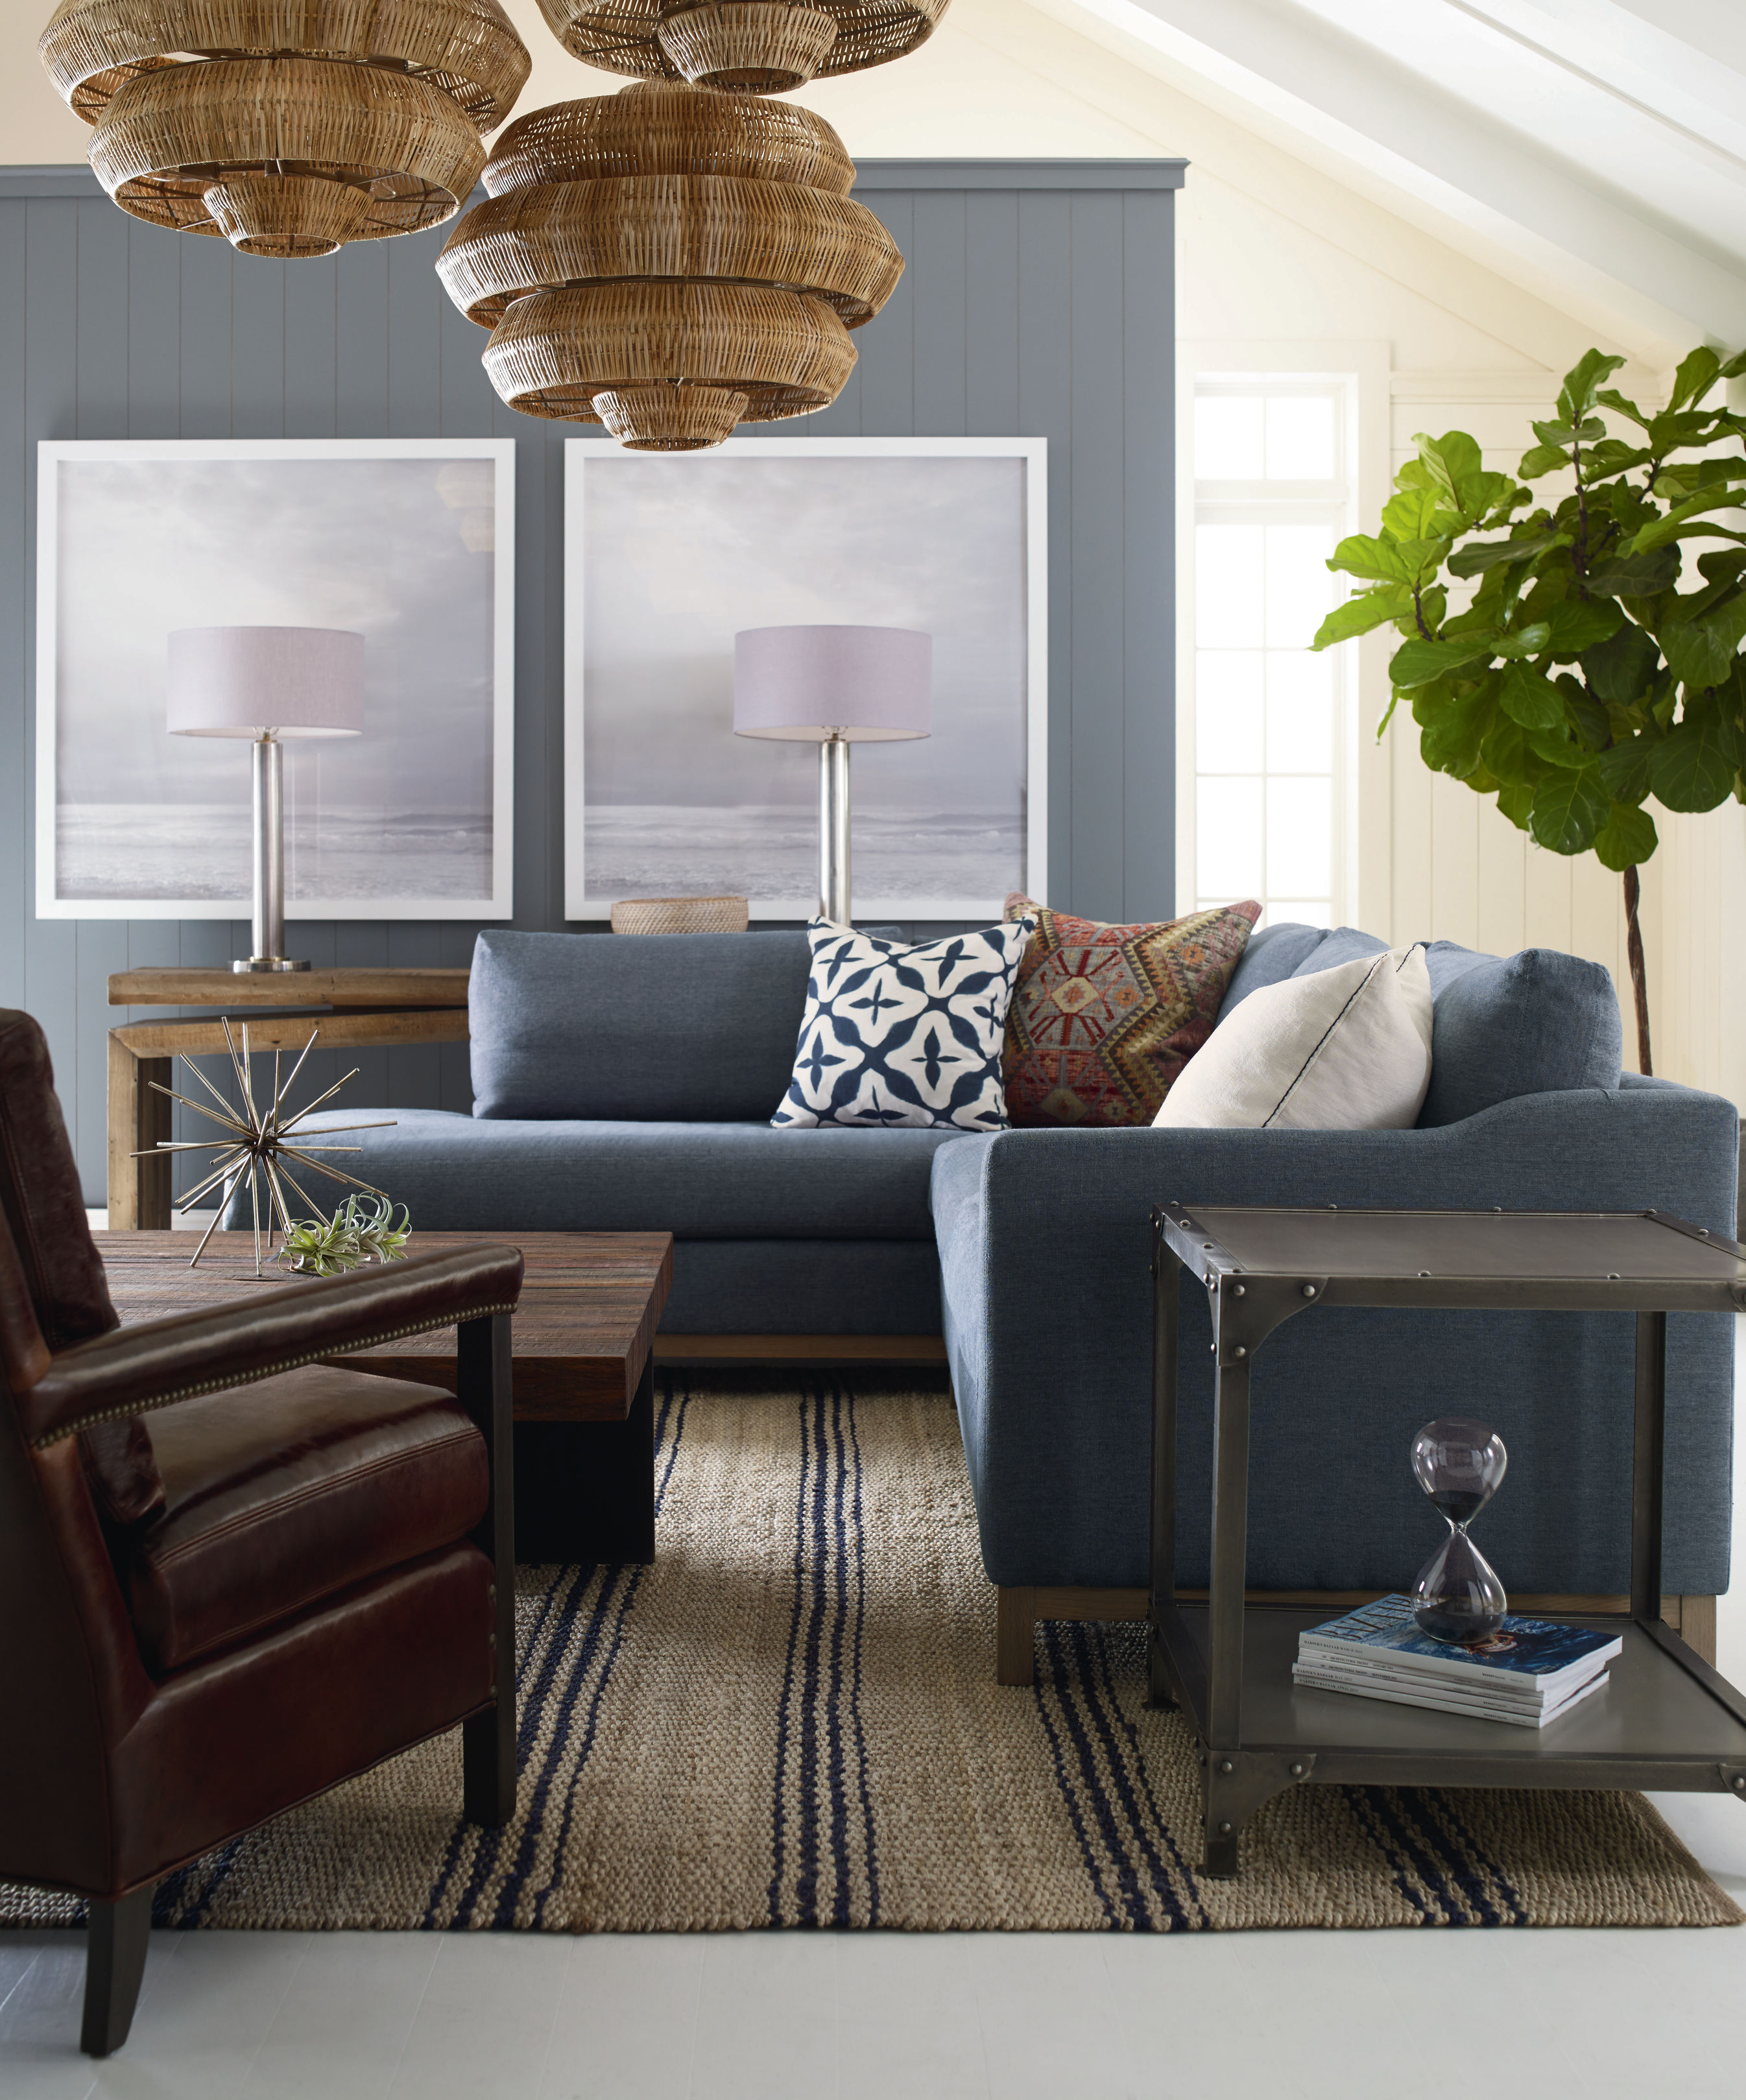 Cr Laine Furniture With Sierra Foam Ii Oversized Sofa Chairs (Image 4 of 25)